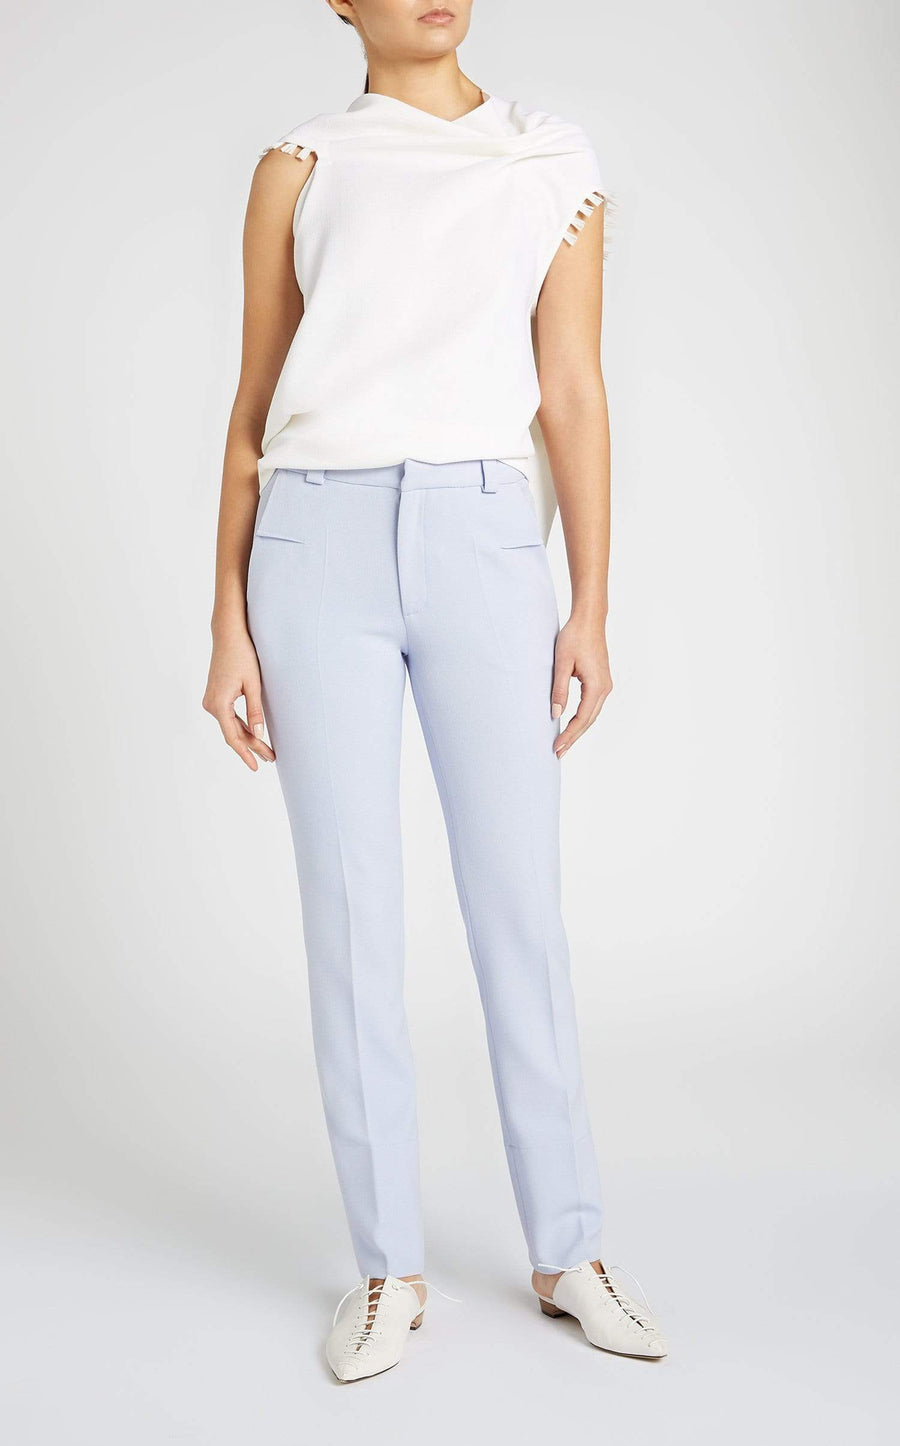 Eugene Top In White from Roland Mouret